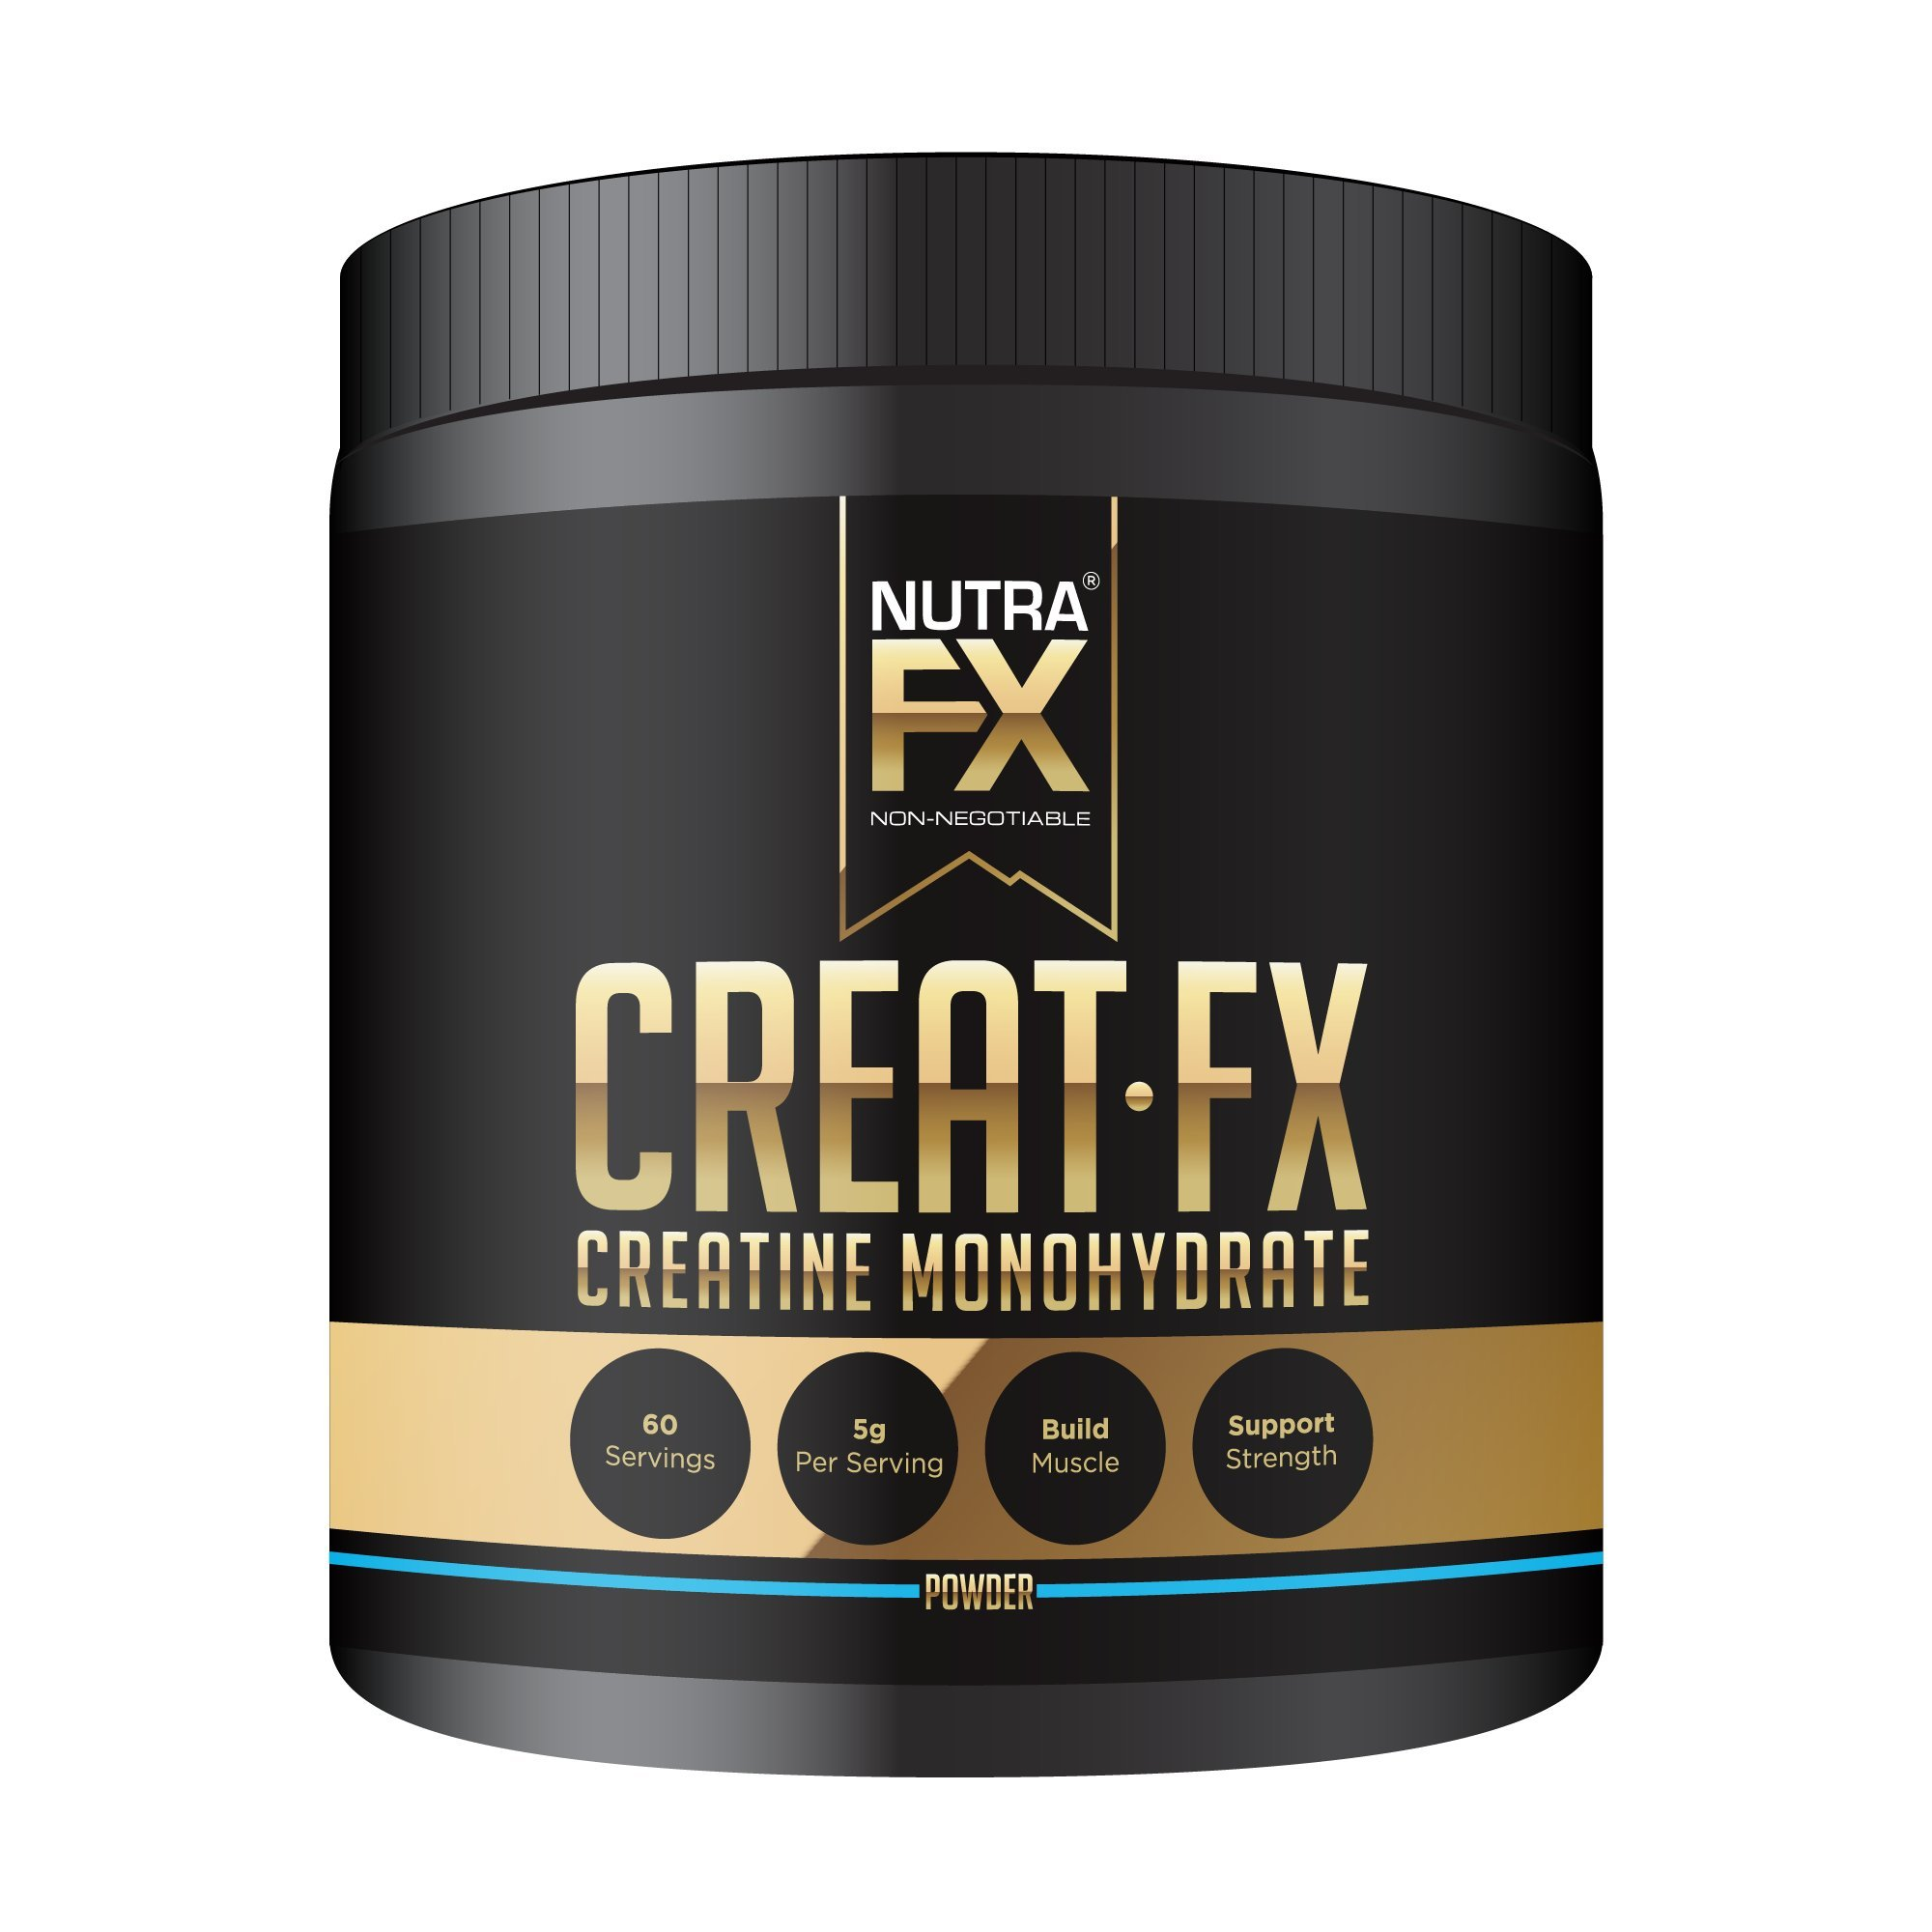 NutraFX Micronized Creatine Monohydrate Powder - With High-Tech Shaker Bottle - All Natural Pre Workout Energy Boost and Muscle Building Supplements (300g - 60 Servings)